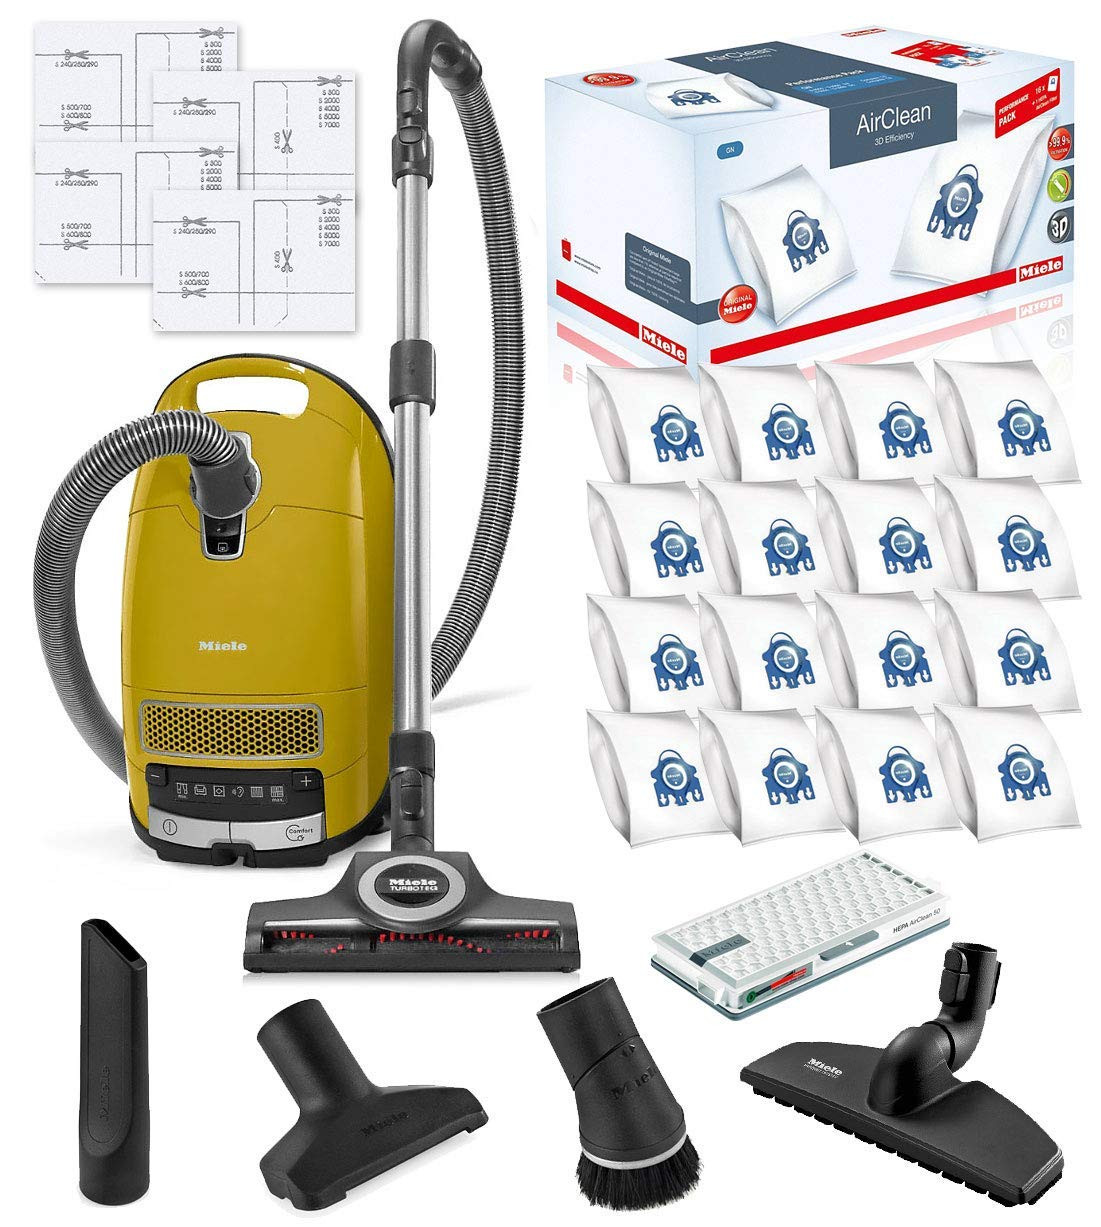 Miele Complete C3 Calima Canister HEPA Vacuum Cleaner + STB 305-3 Turbobrush Bundle - Includes Miele Performance Pack 16 Type GN AirClean Genuine FilterBags + Genuine AH50 HEPA Filter